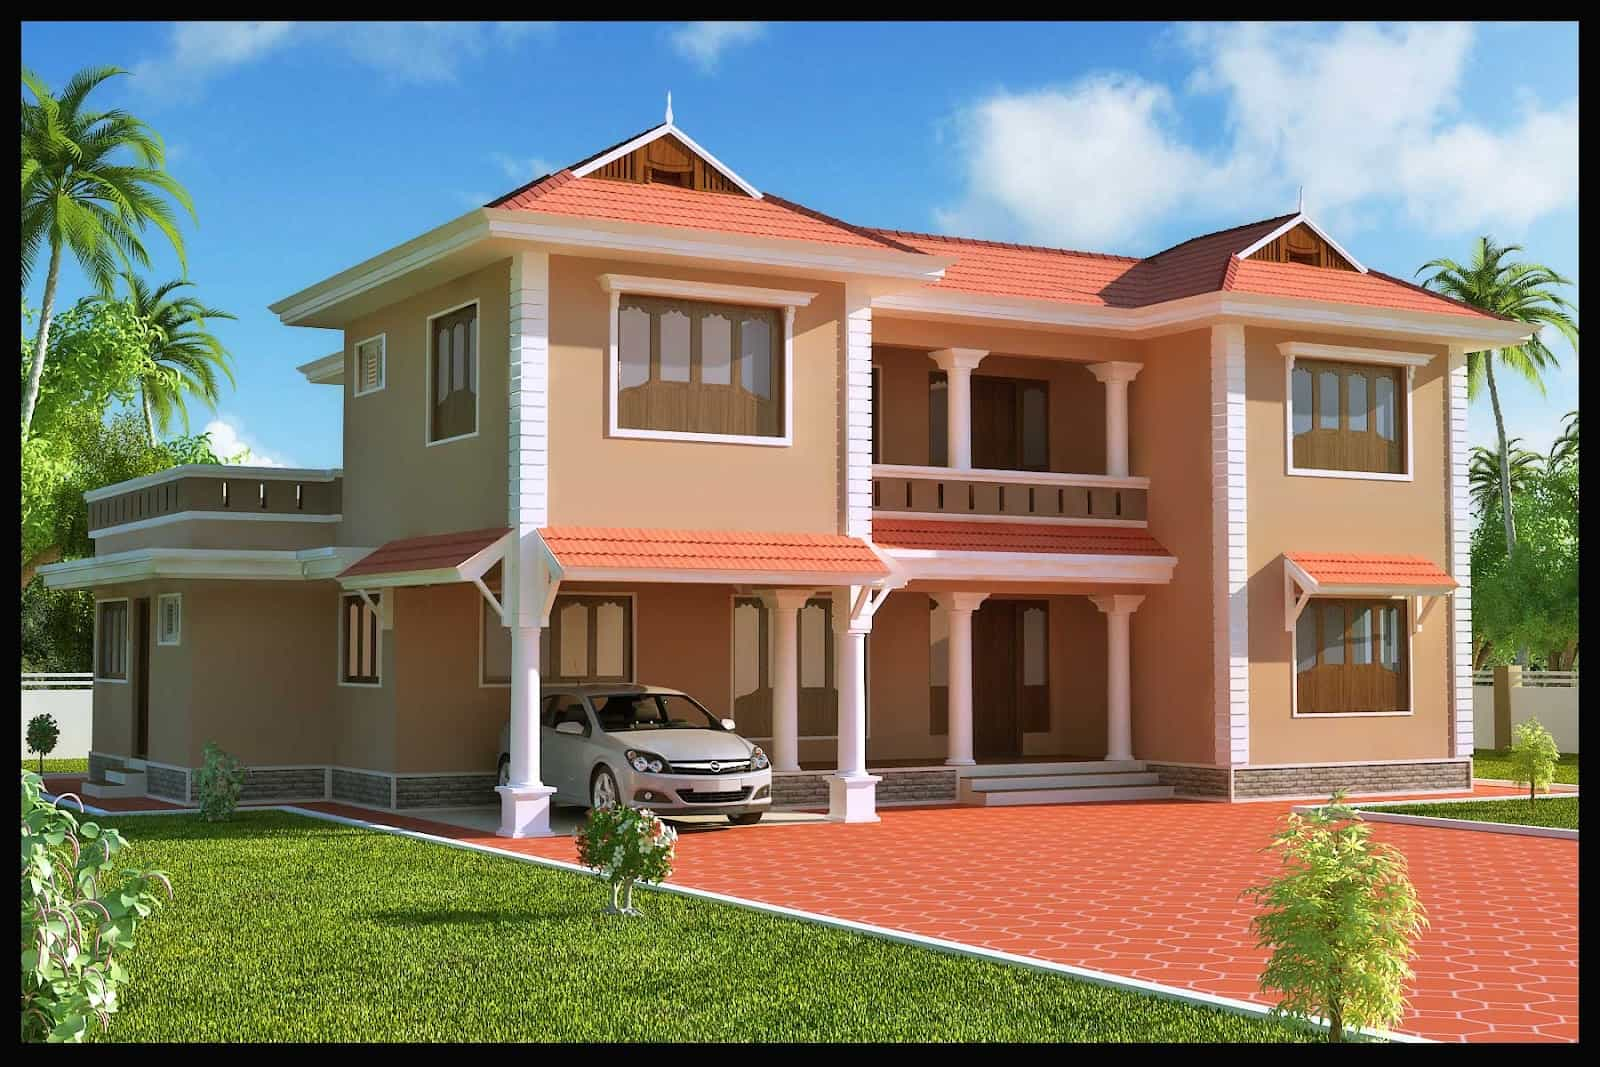 Stylish Indian Duplex house exterior design Kerala Home Design Duplex